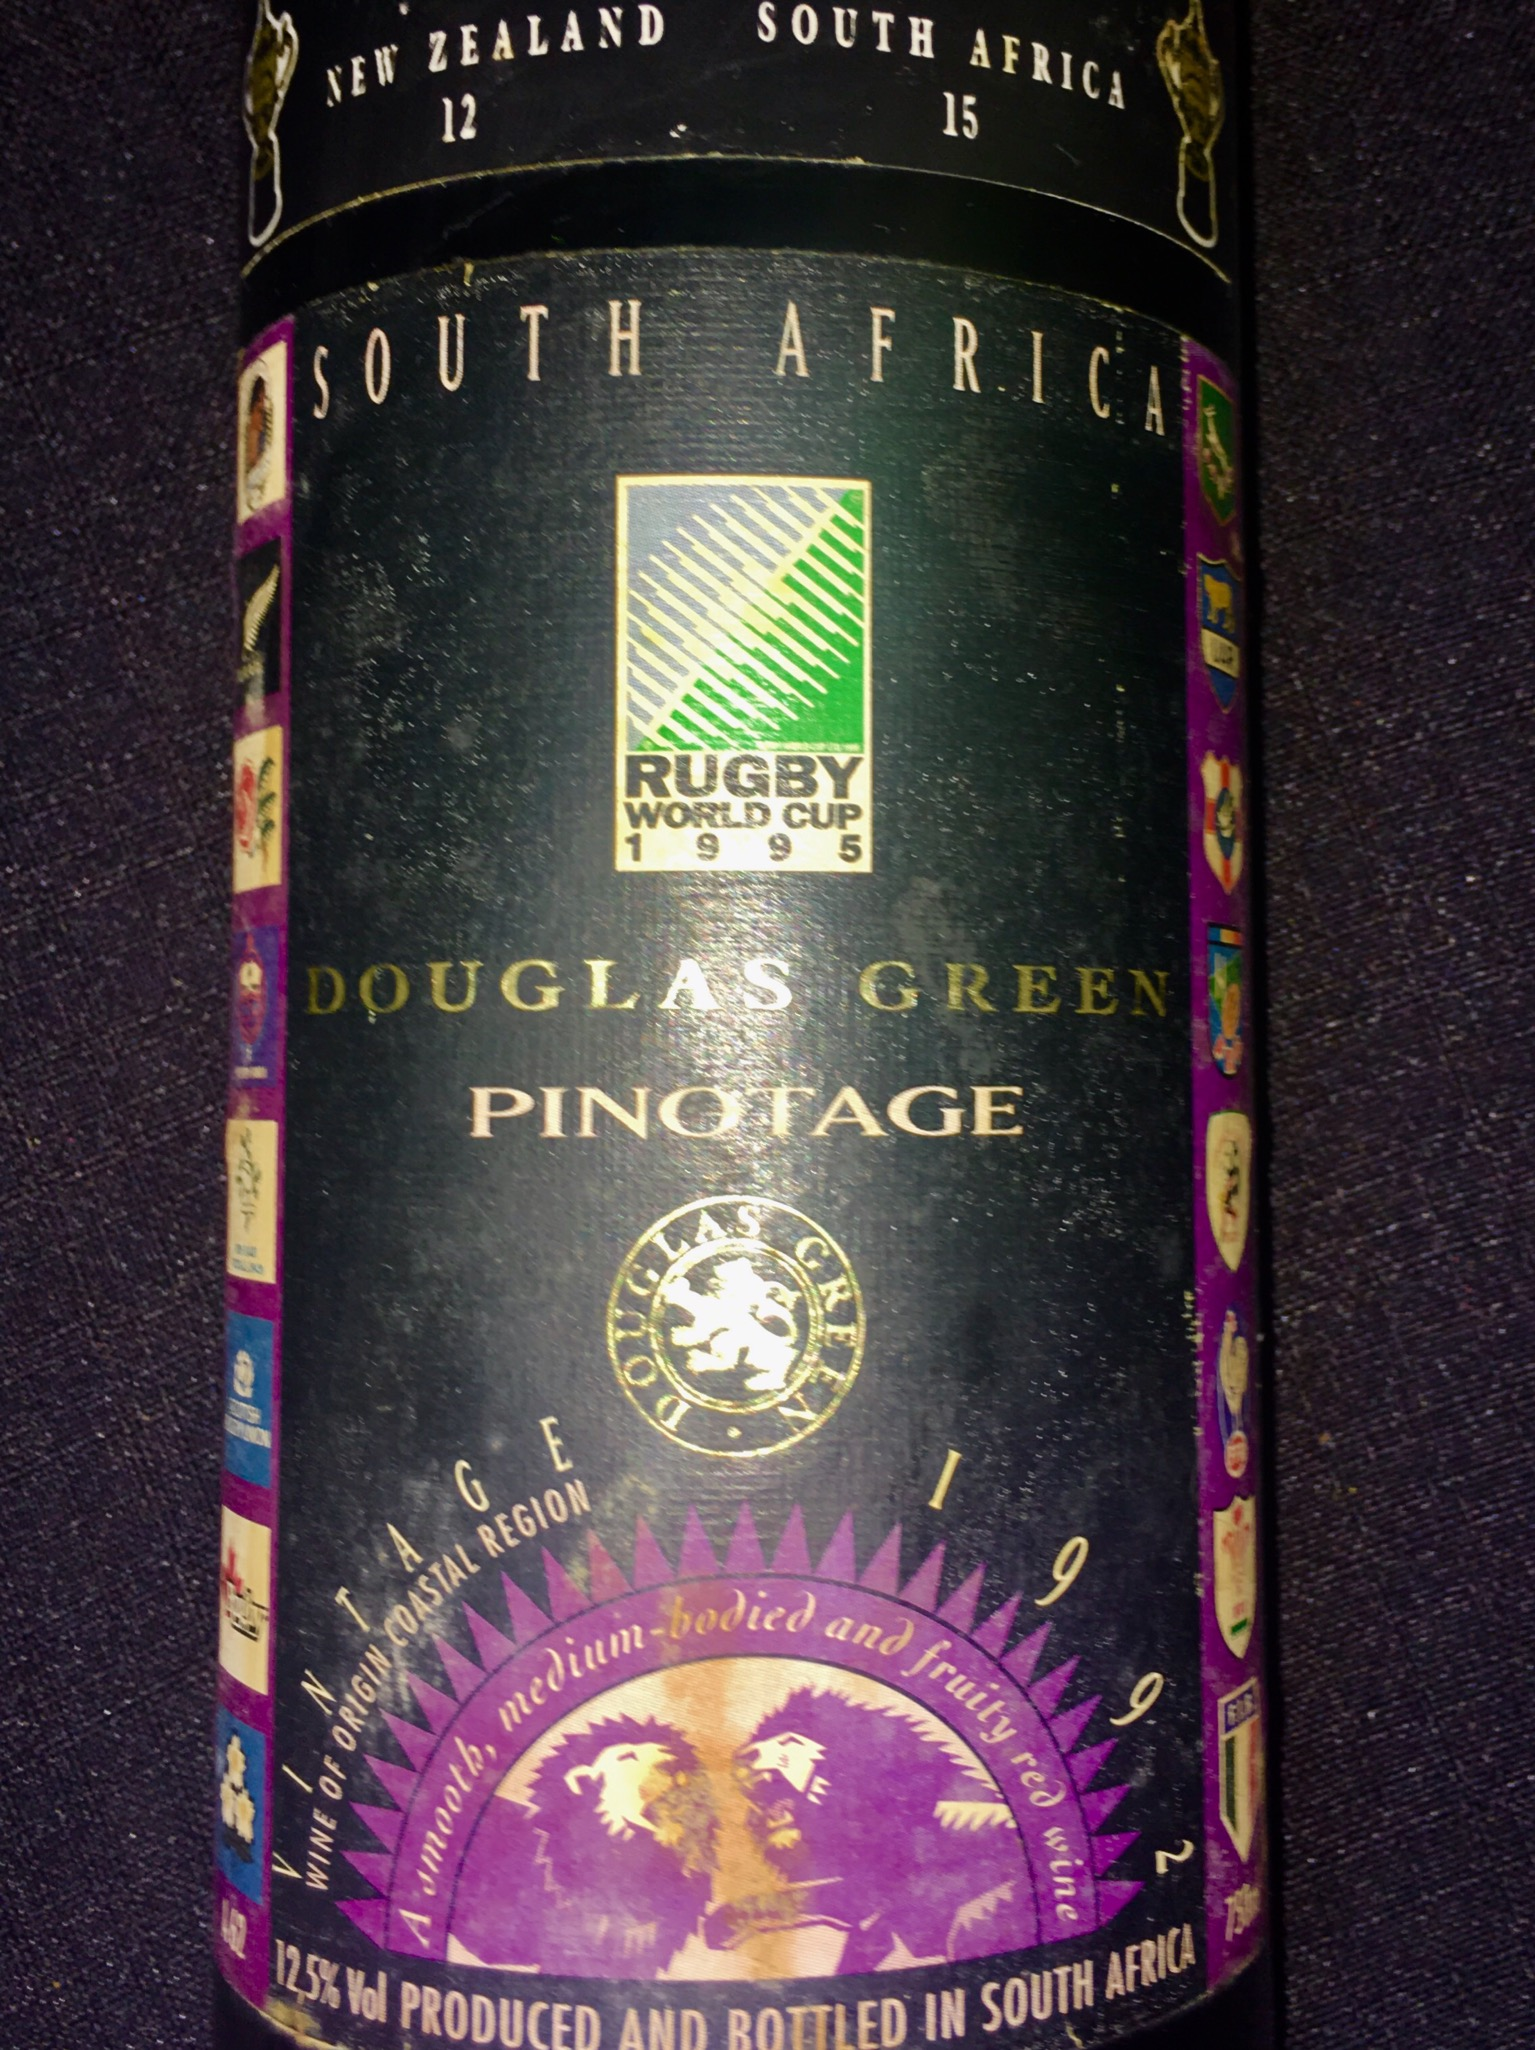 1995 RUGBY WORLD CUP Commemorative Wine, 750ml